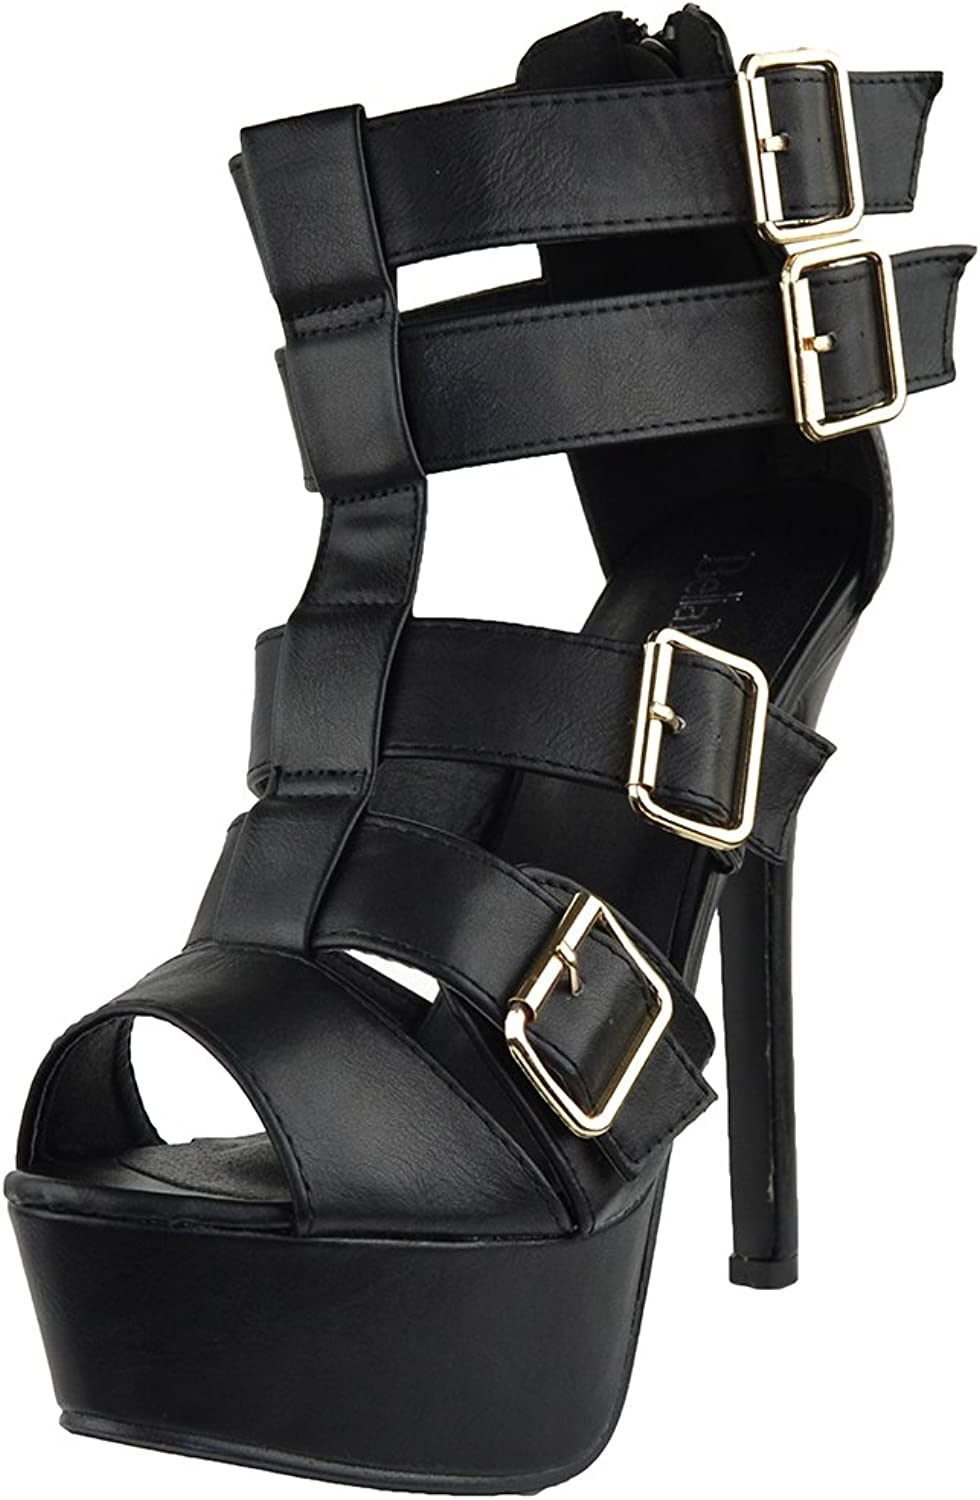 KSC Womens Dress Sandals Strappy Buckle Accents Platform shoes